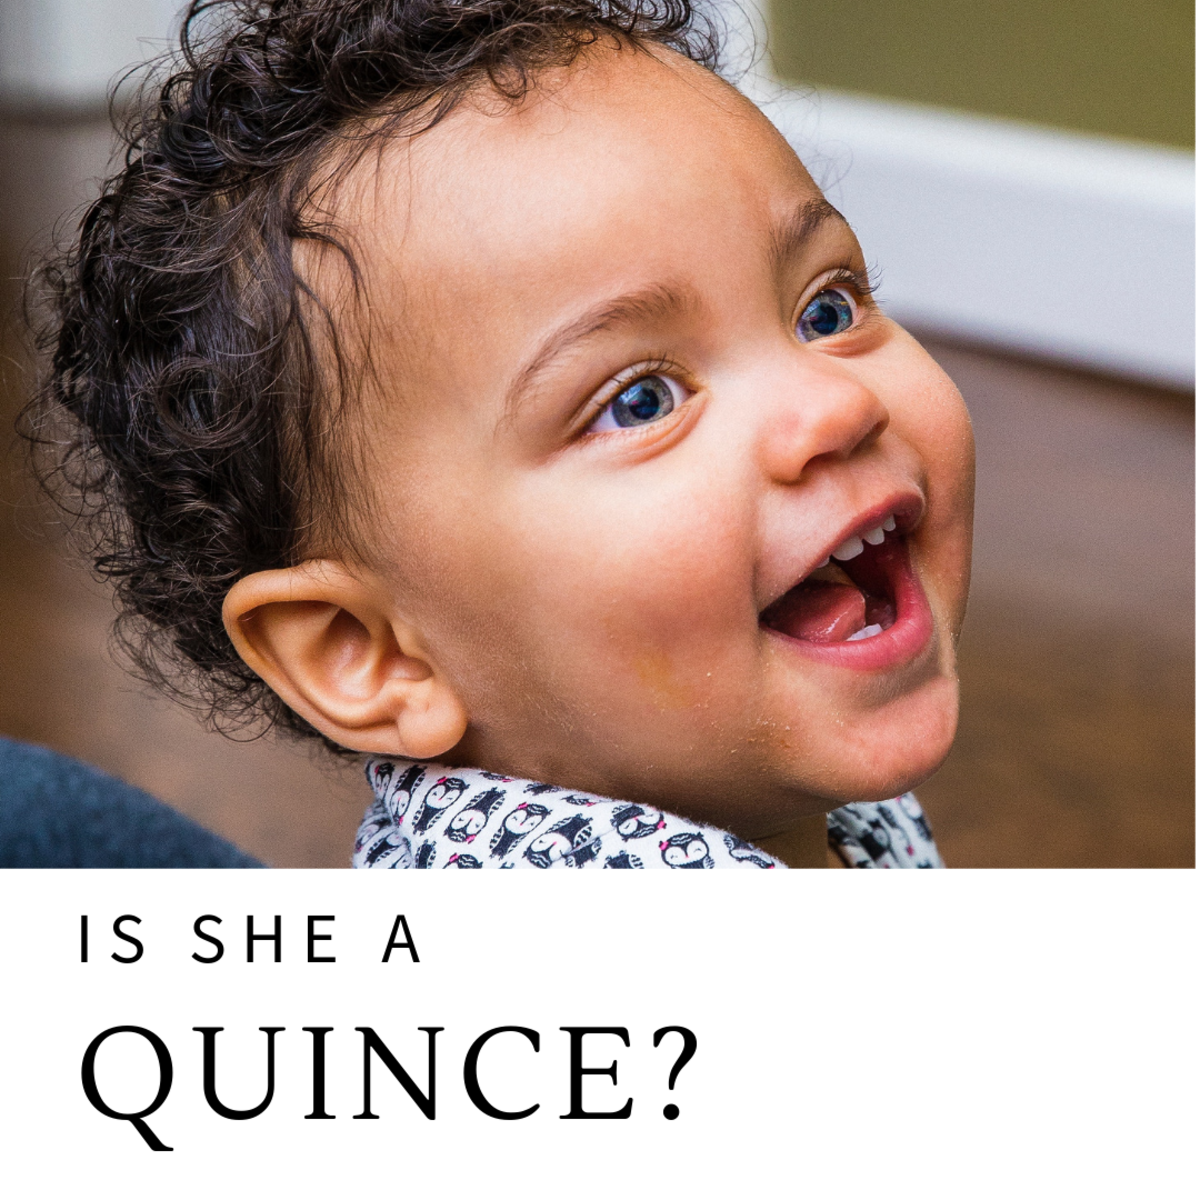 Is she a Quince?